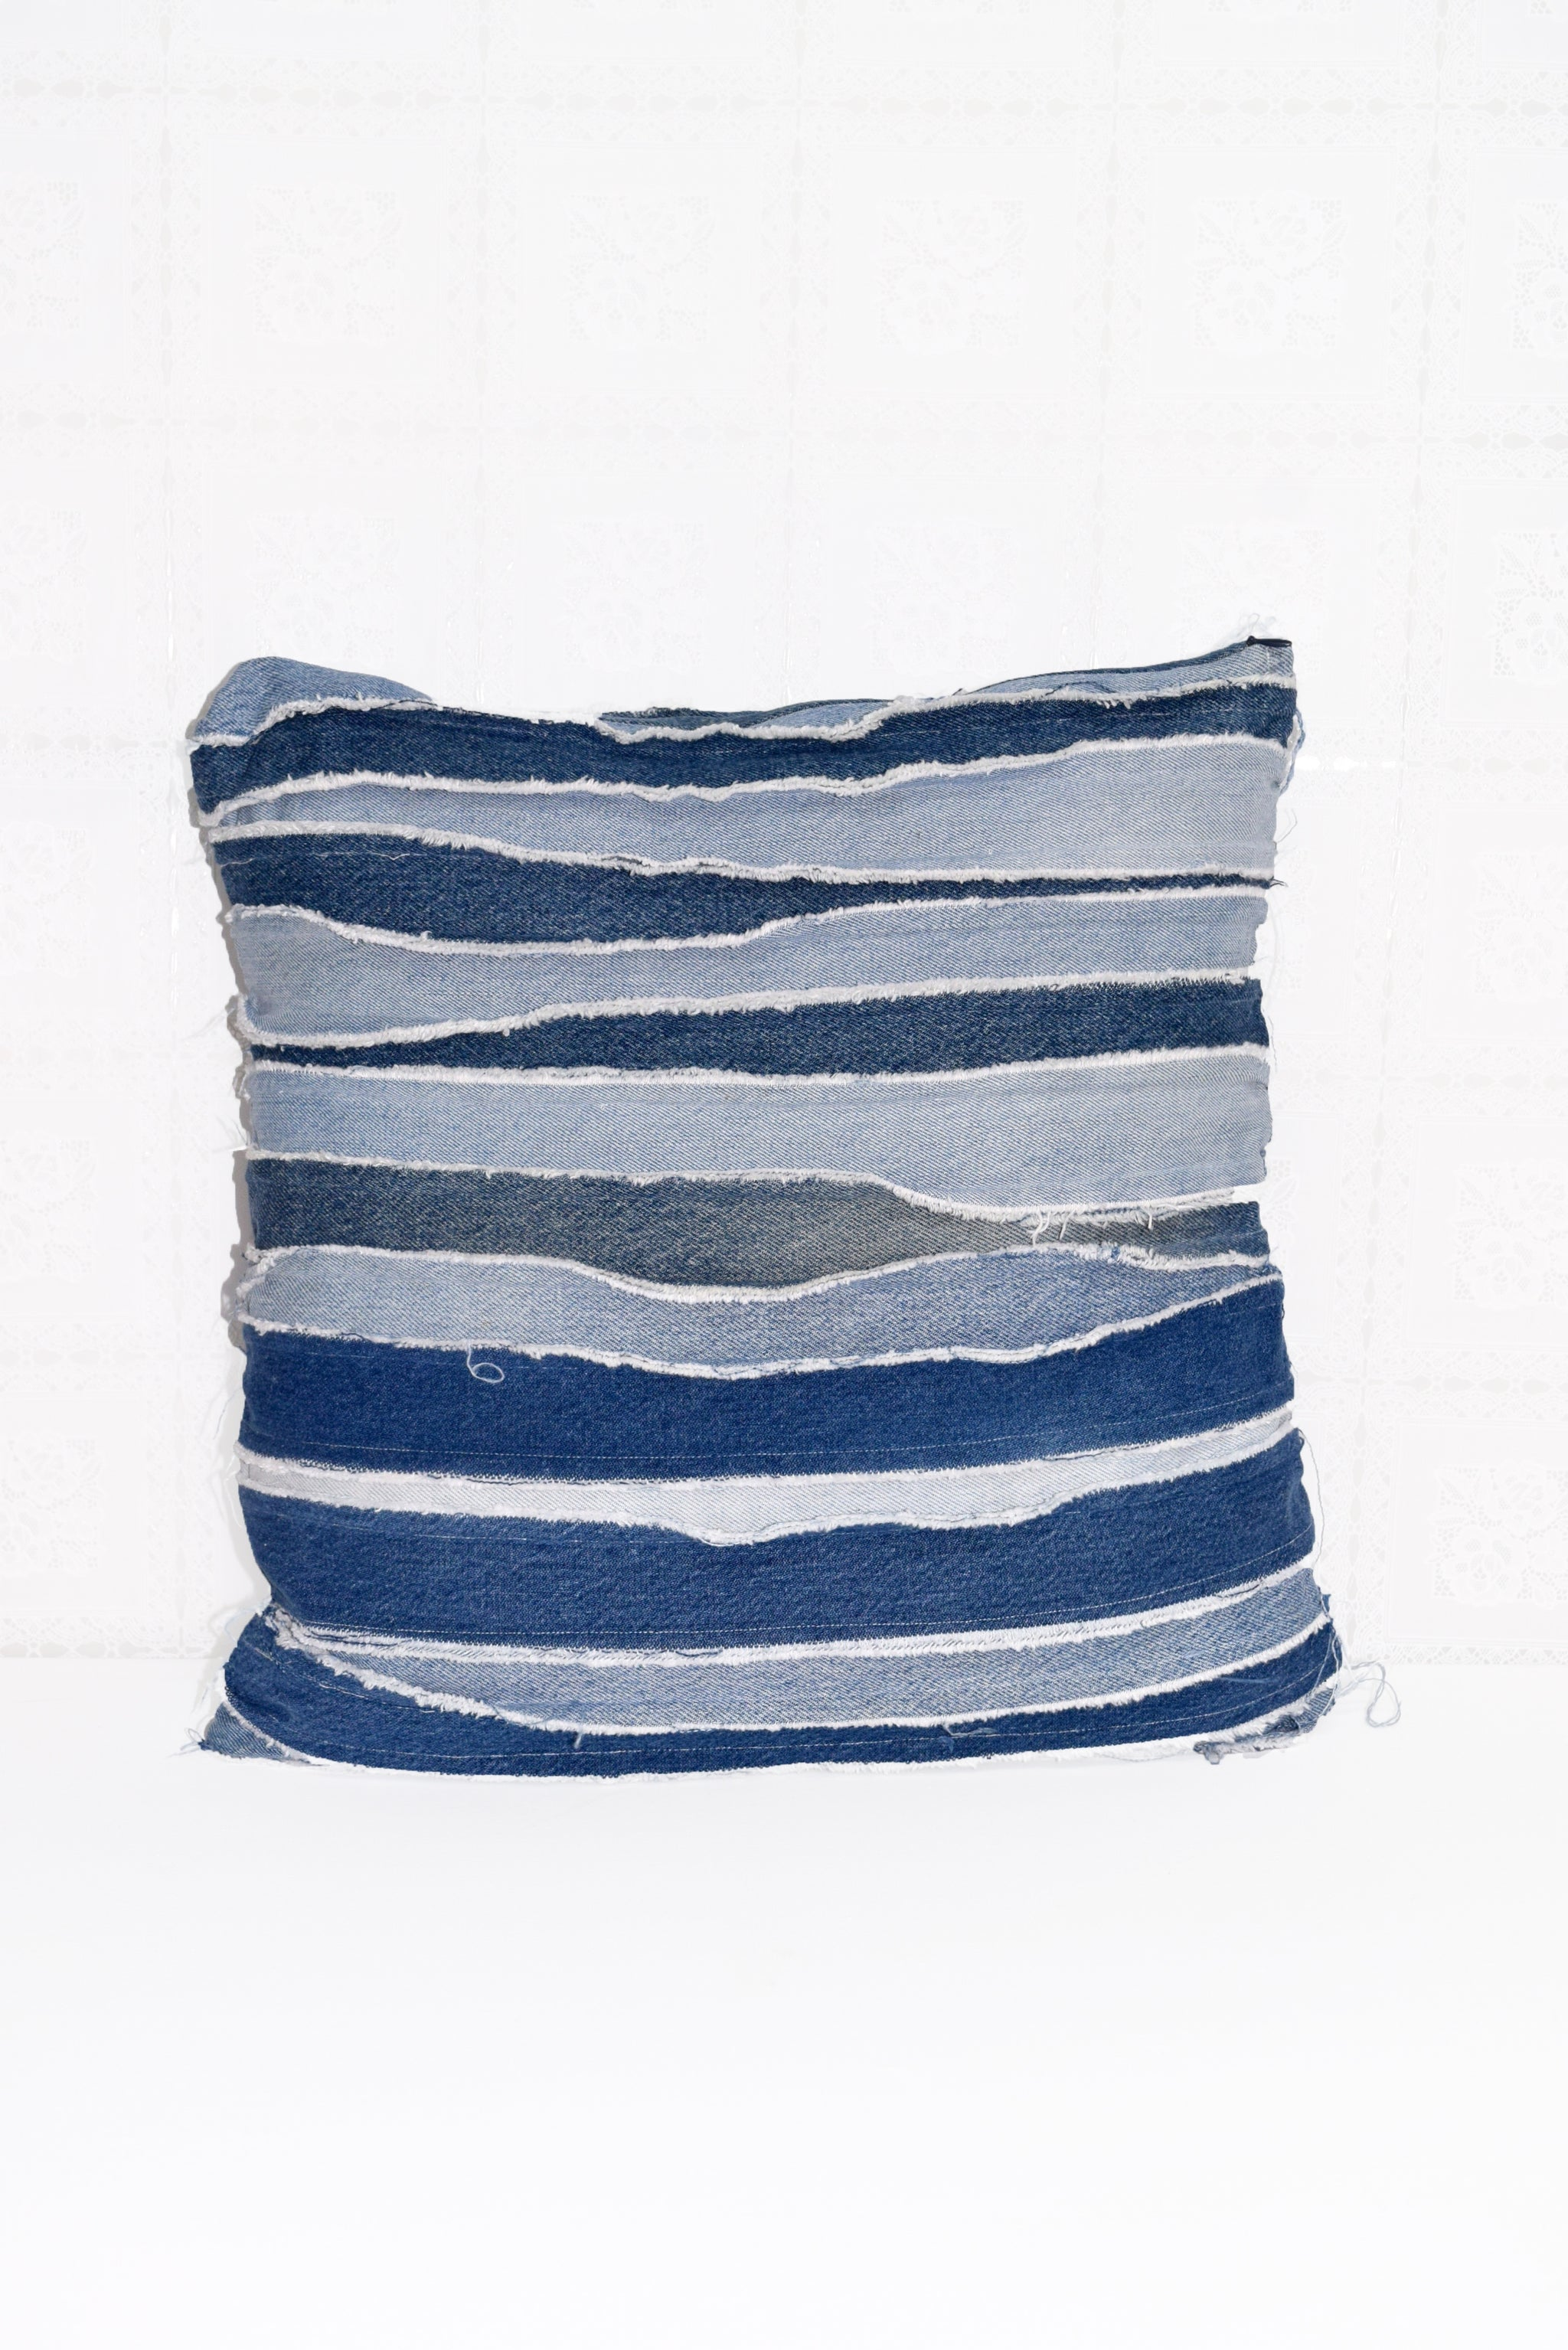 denim pillow cover, denim pillow case